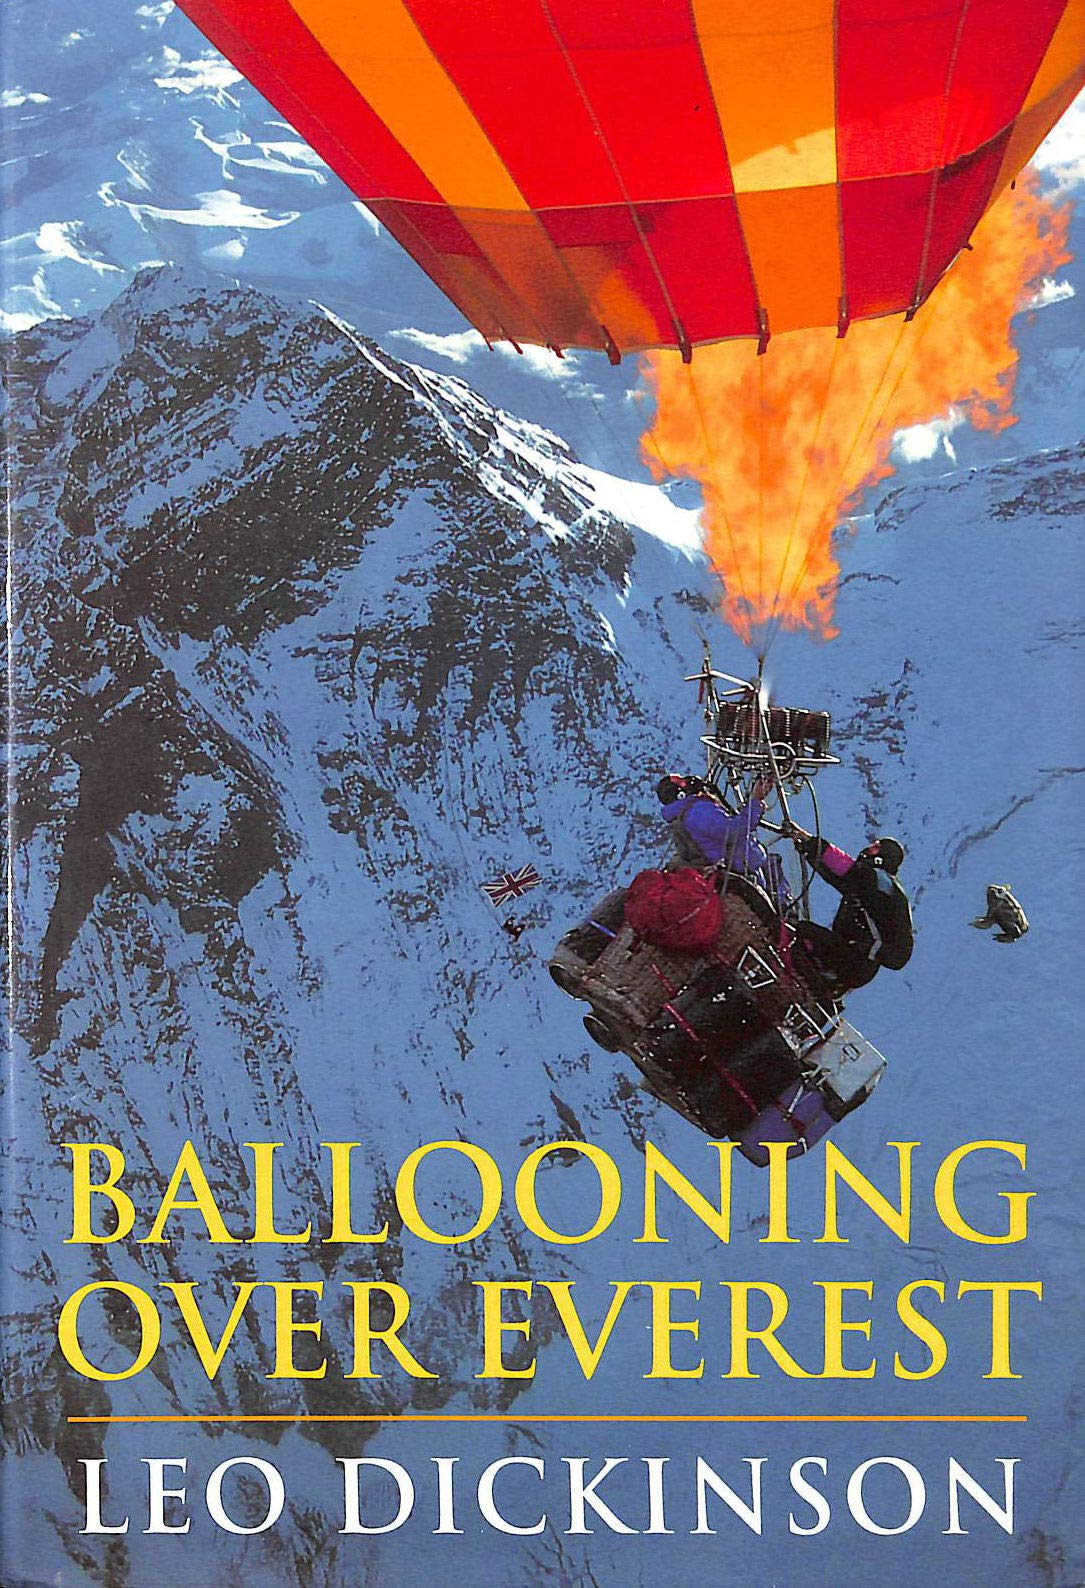 Image OfBallooning Over Everest